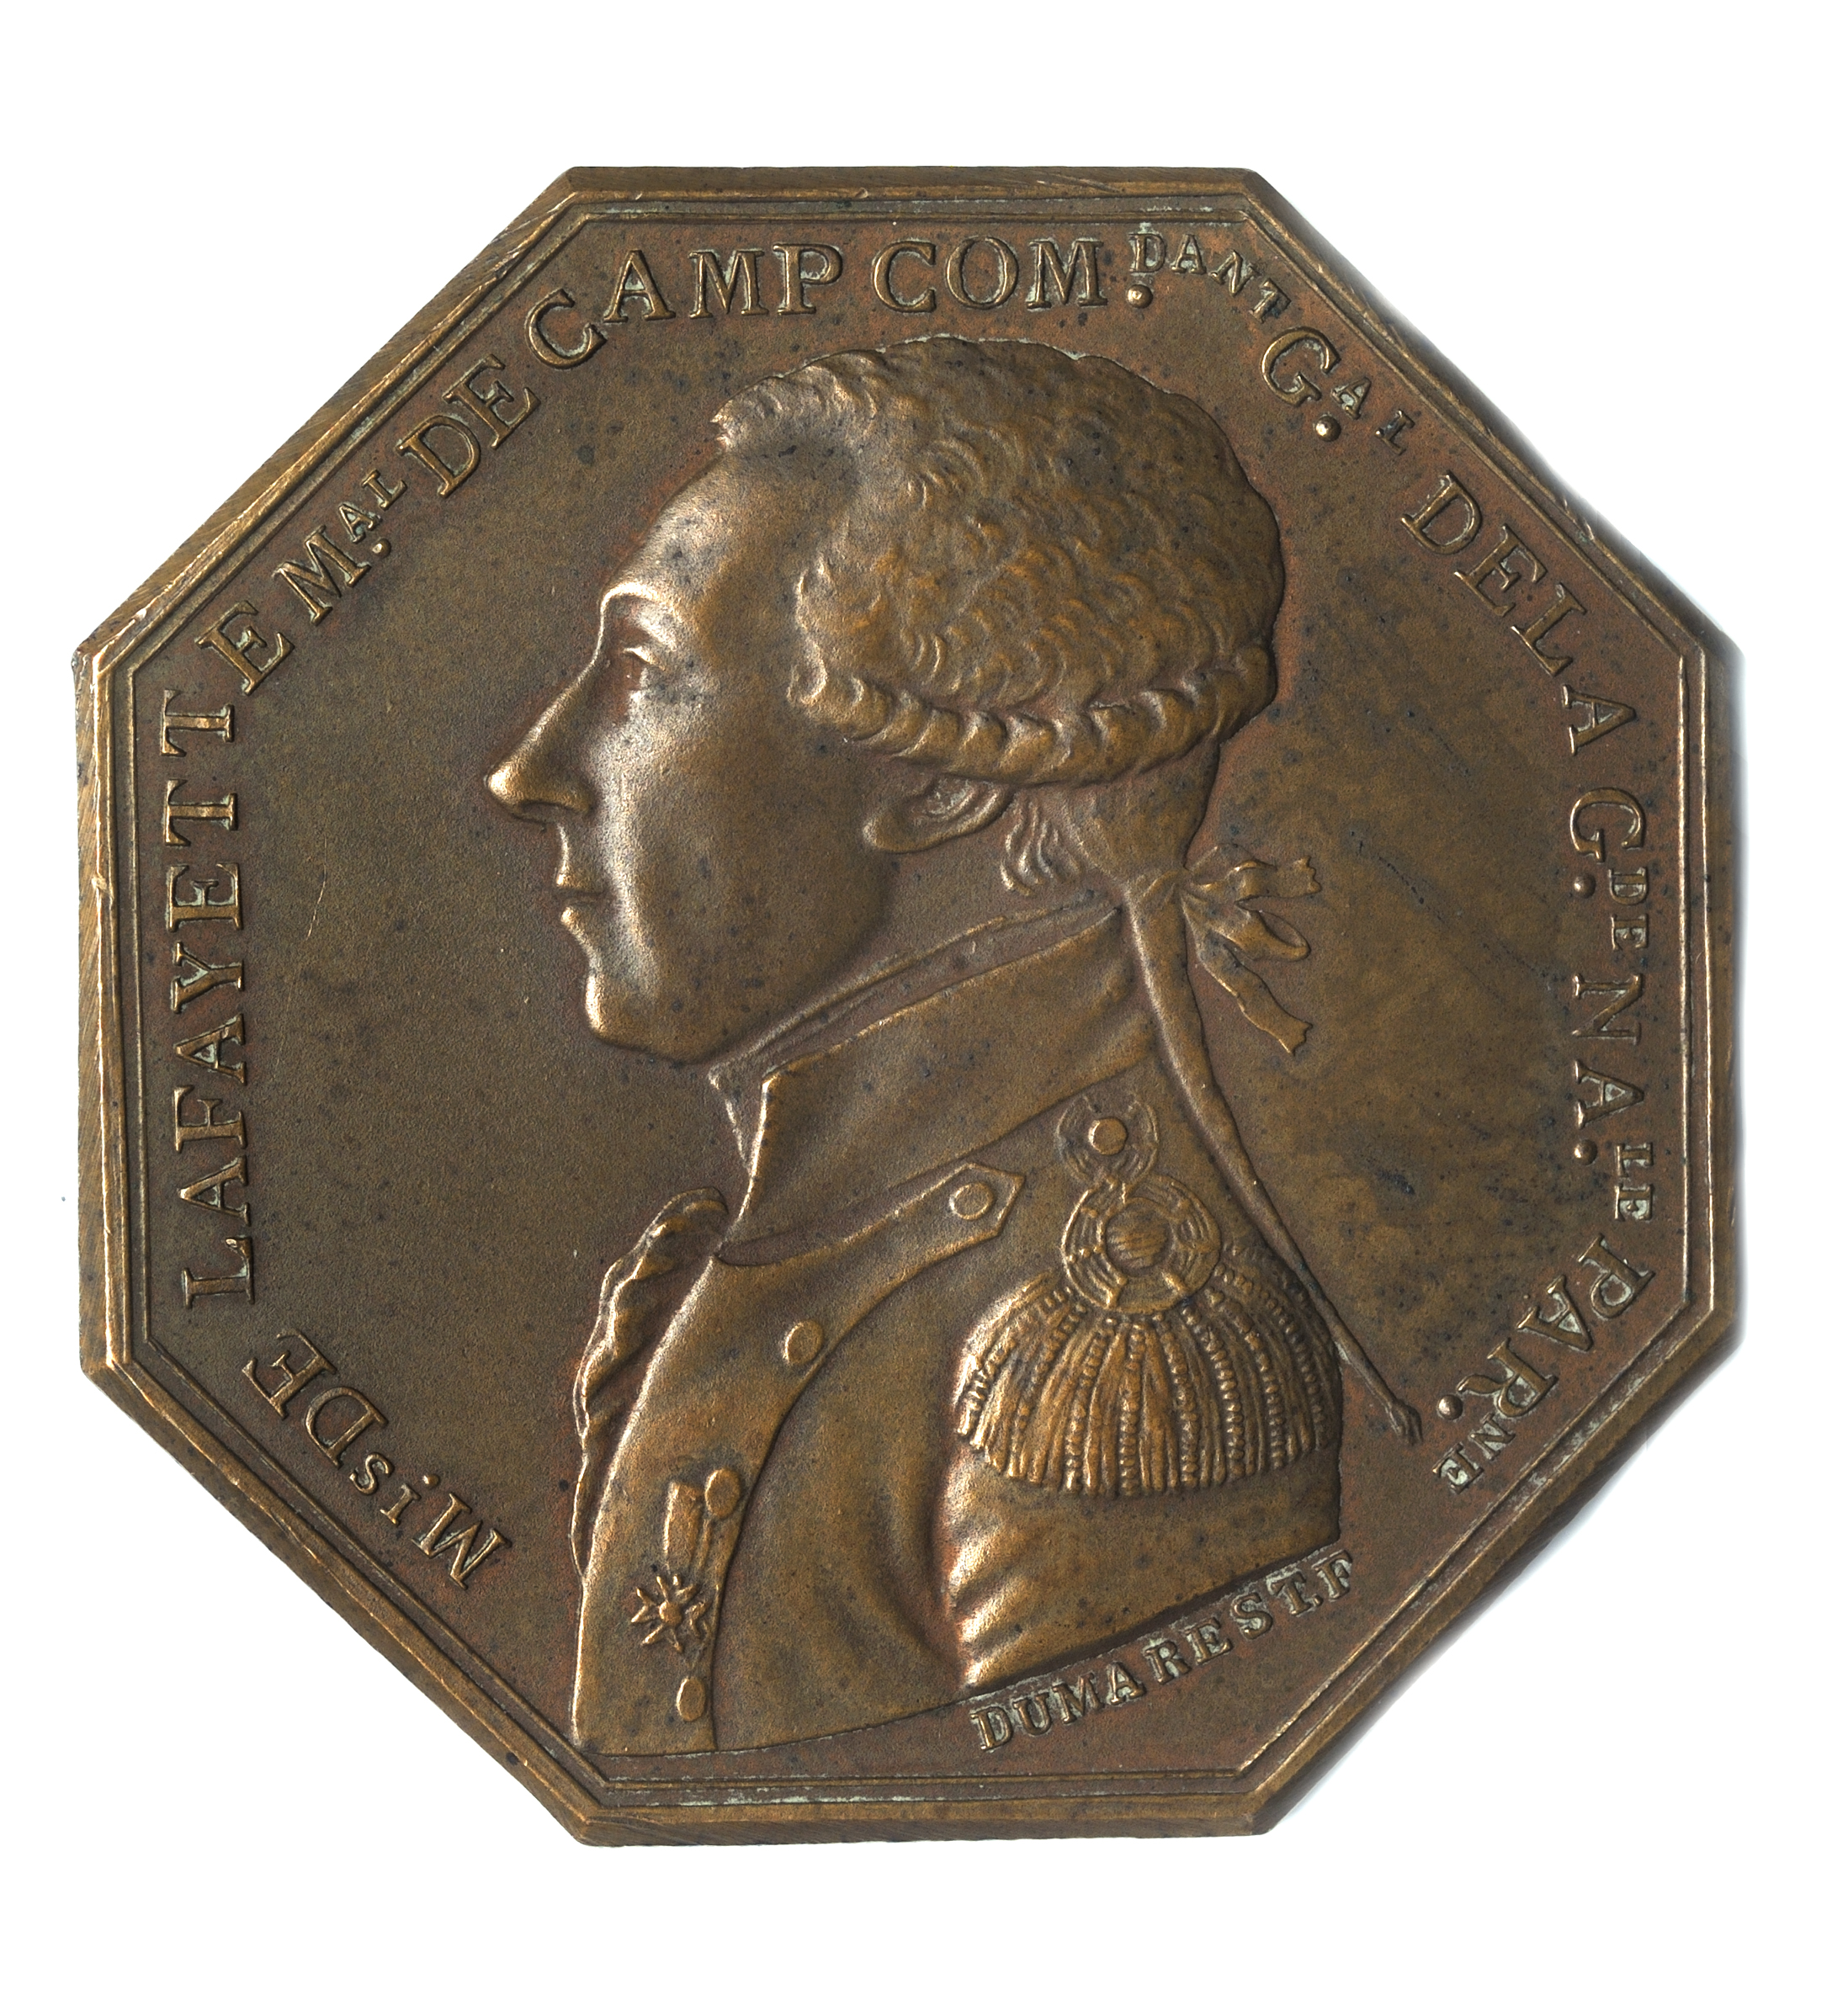 Marquis de Lafayette commemorative medal by Dumarest, 1789